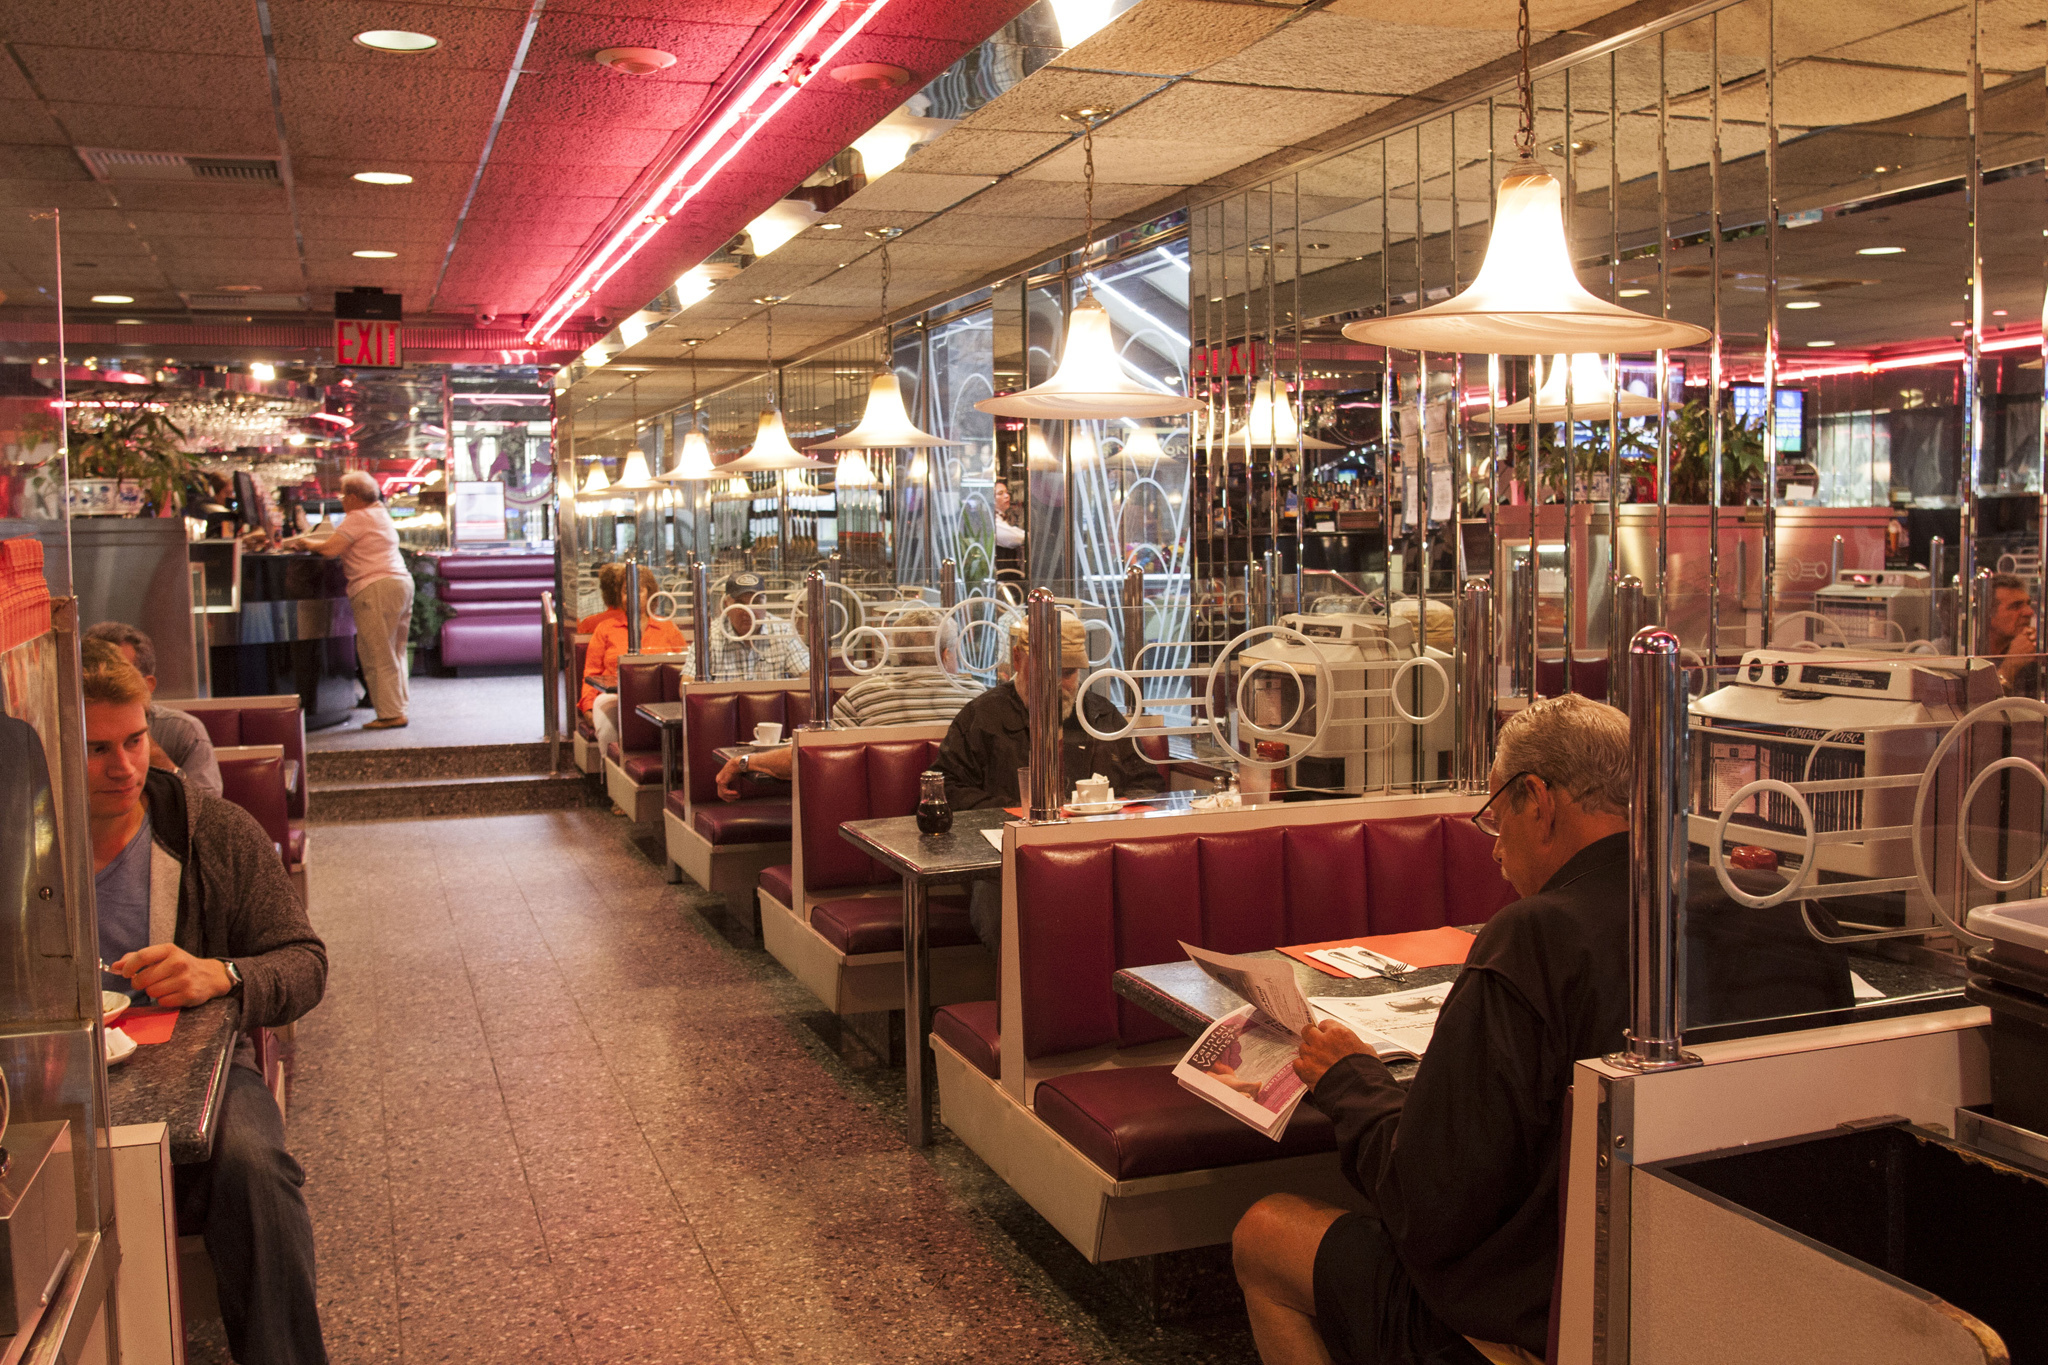 Best diners and luncheonettes in new york city for American classic diner